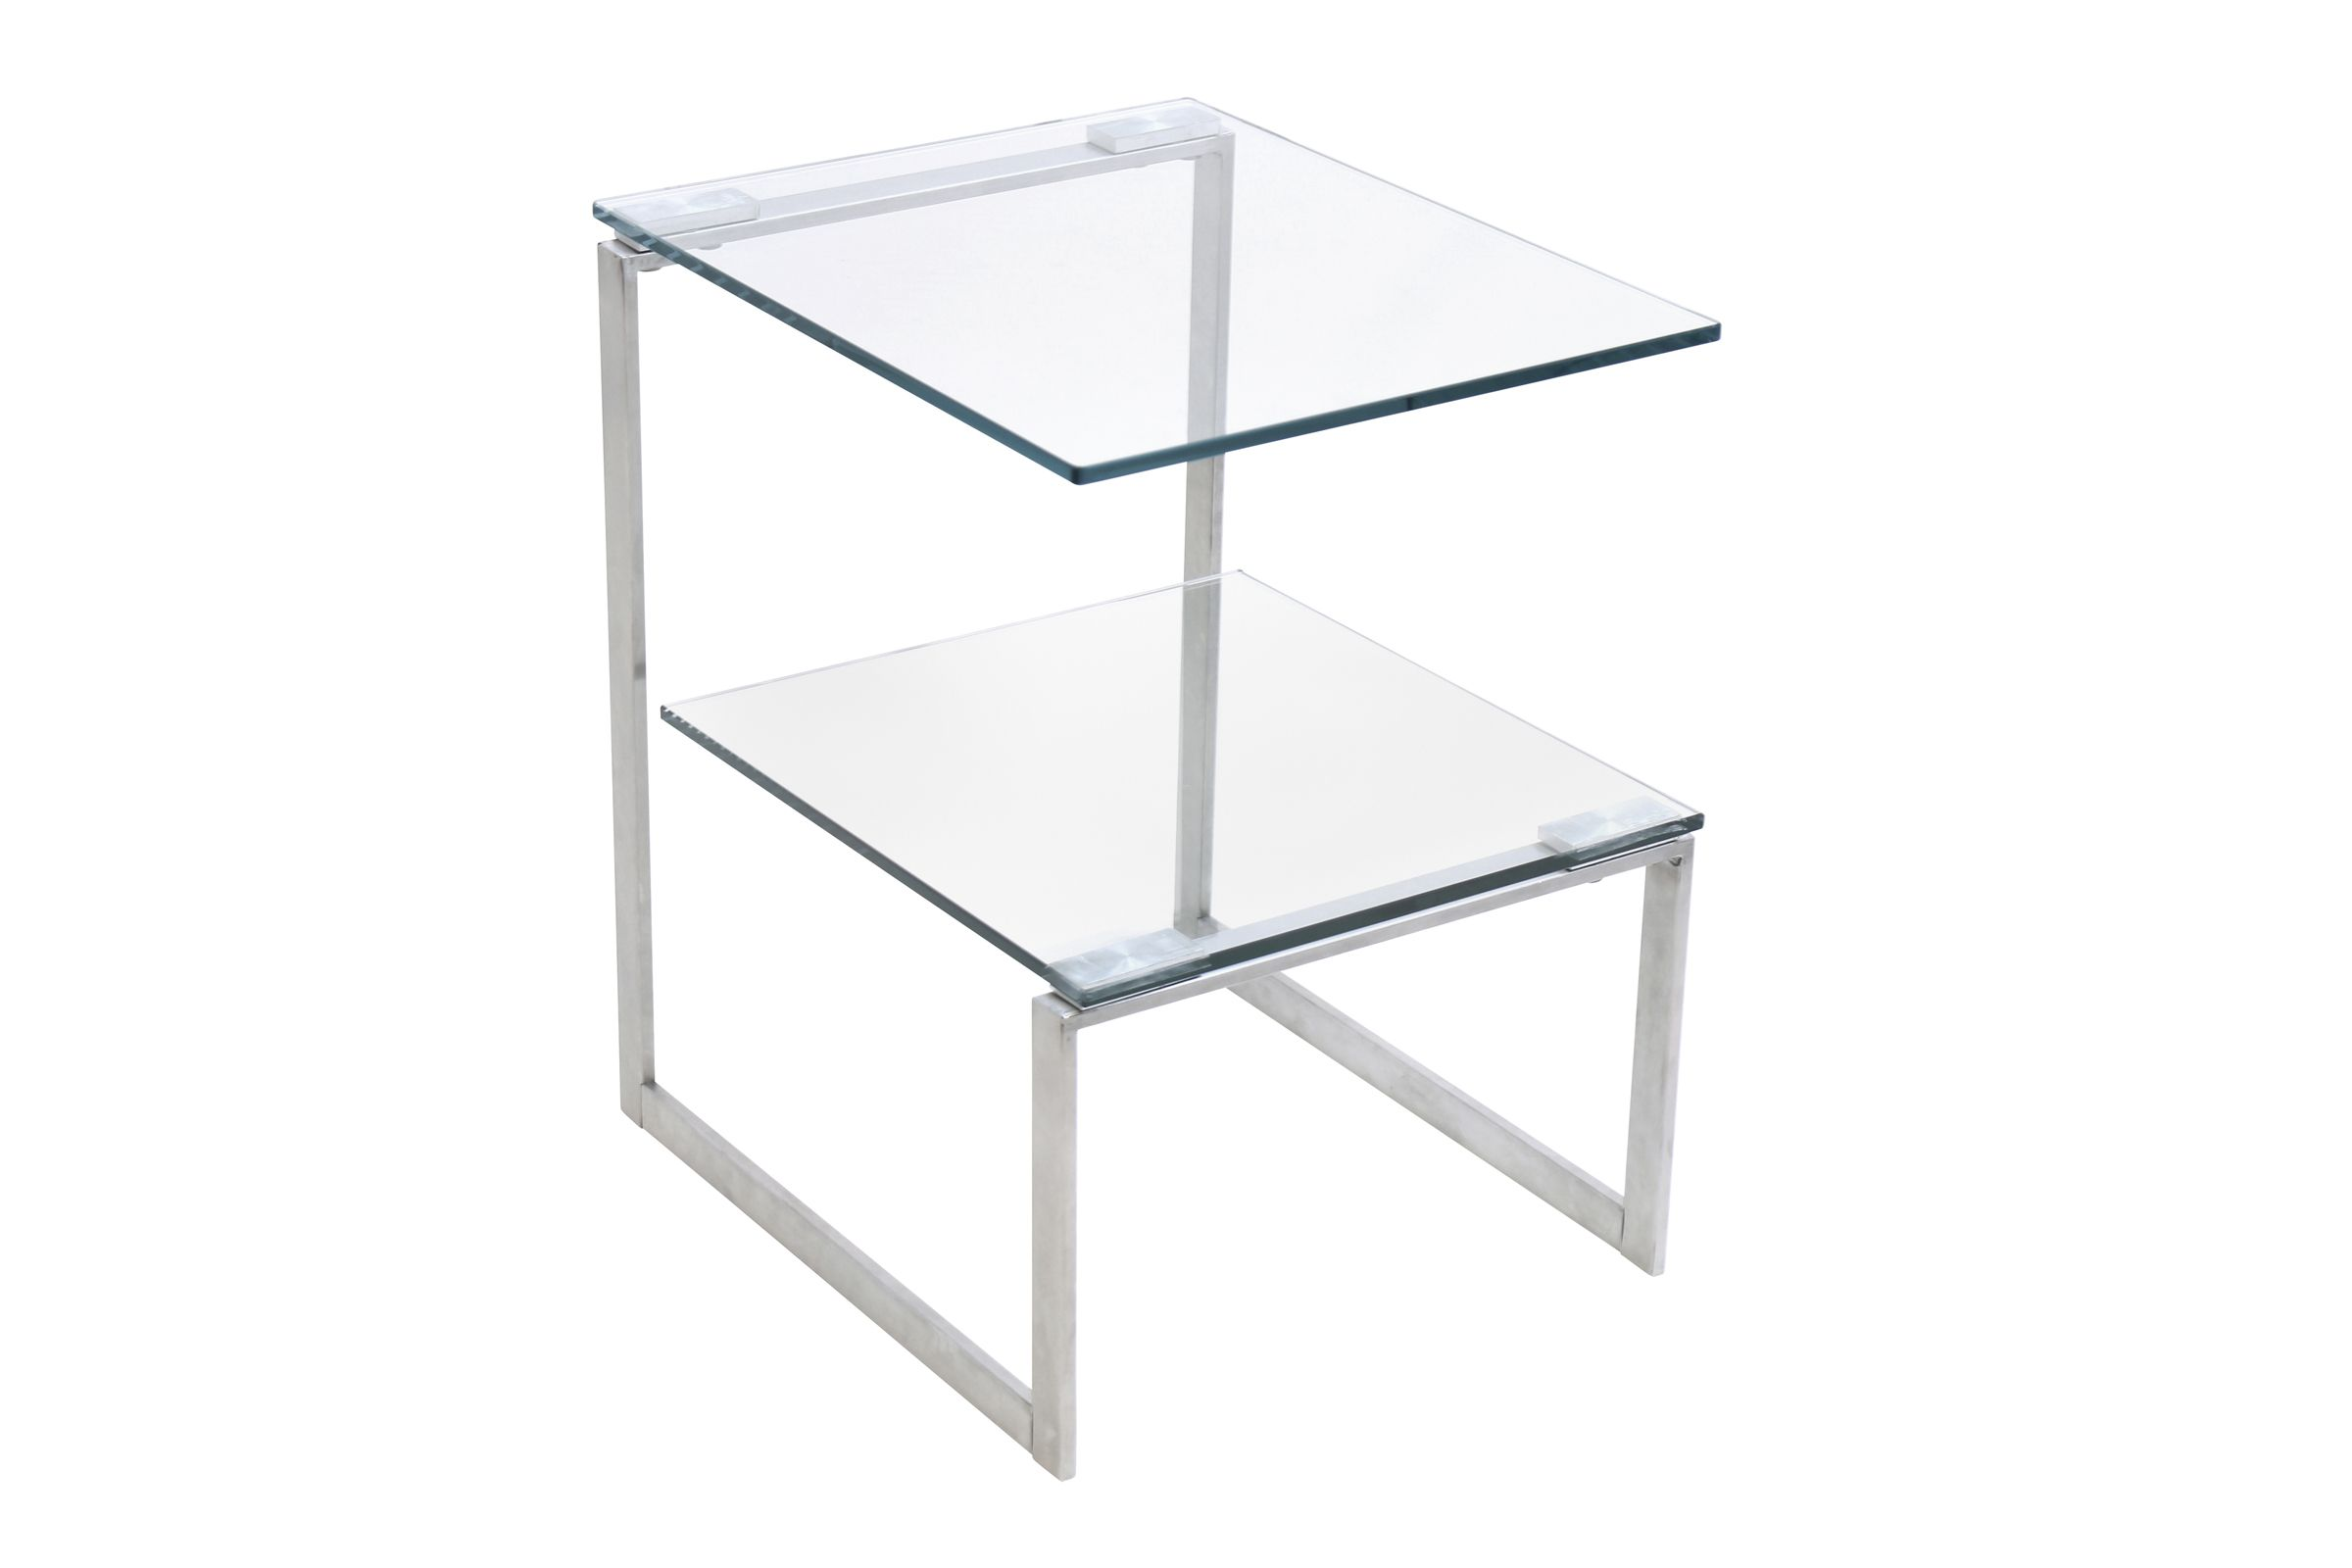 Guss Side Table By Lumisource In 2020 Contemporary End Tables